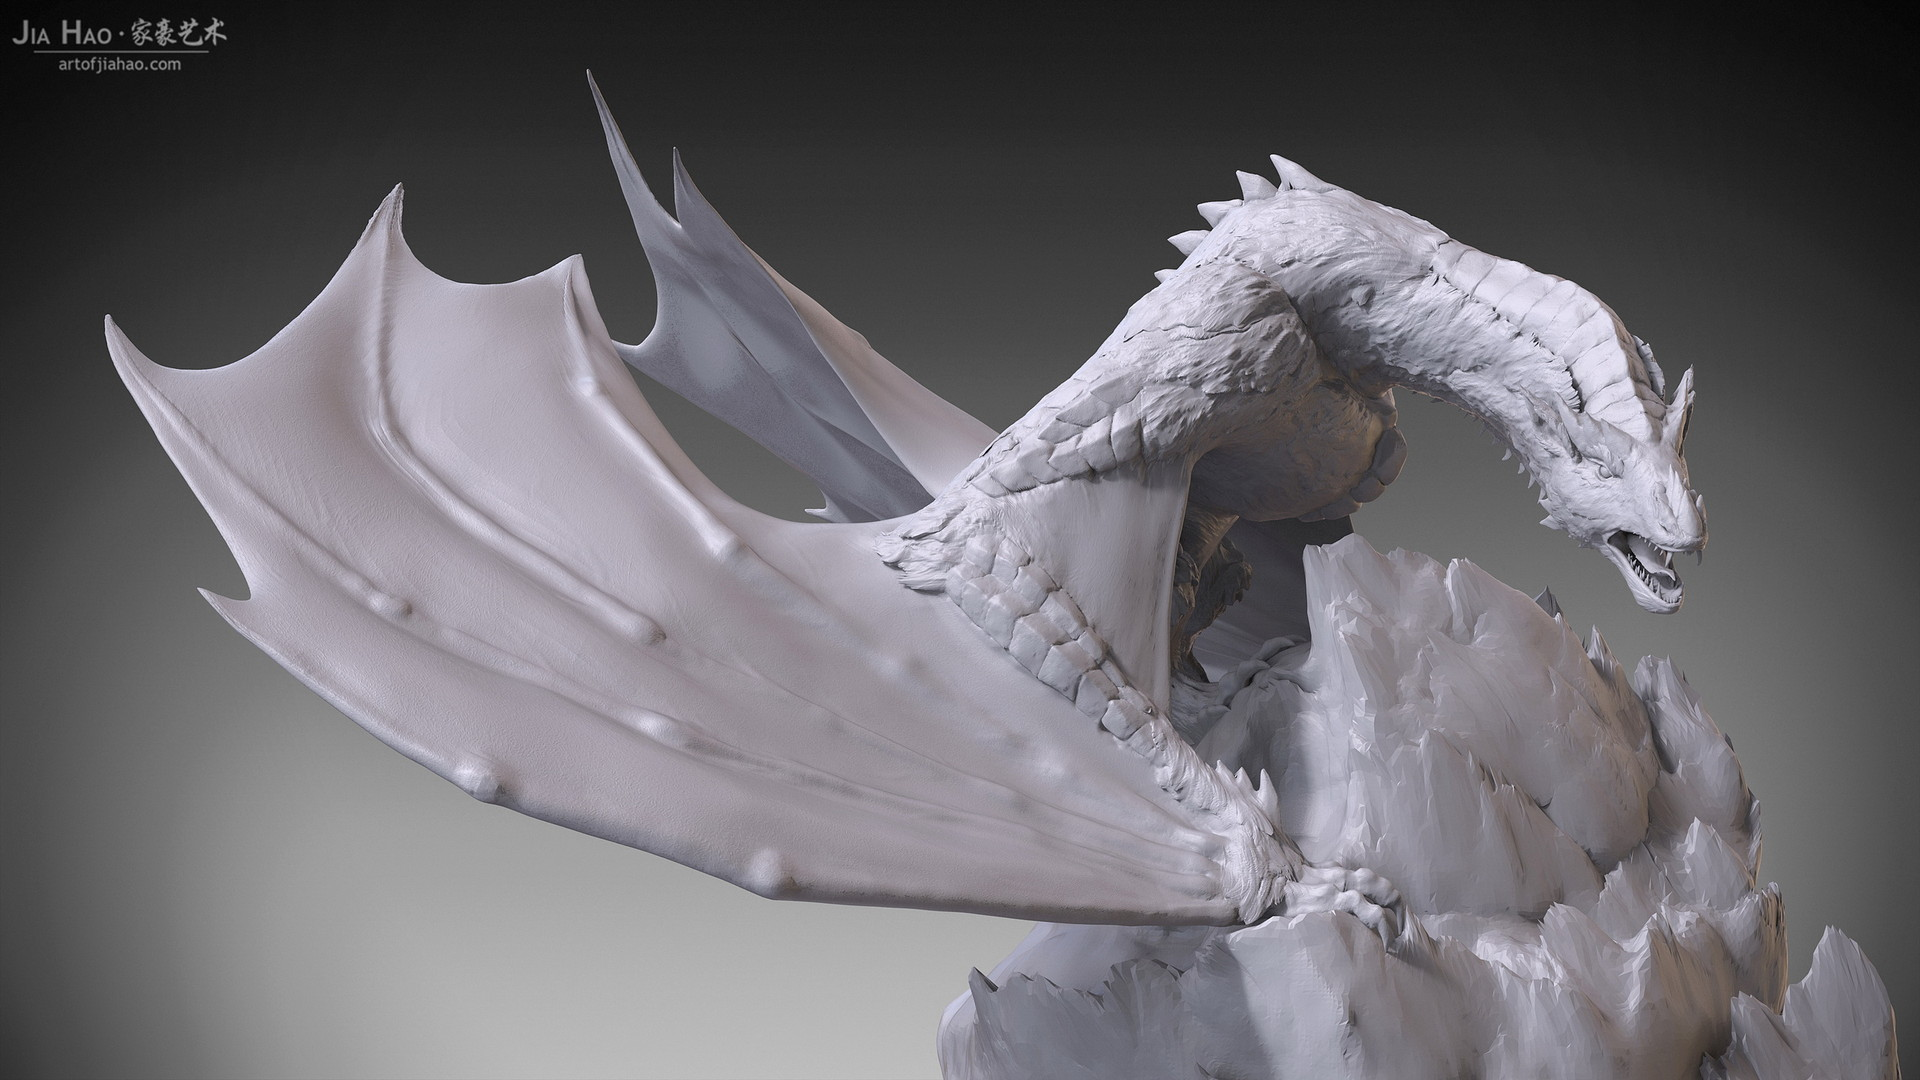 Jia hao 2018 snowdragon digitalsculpting 401